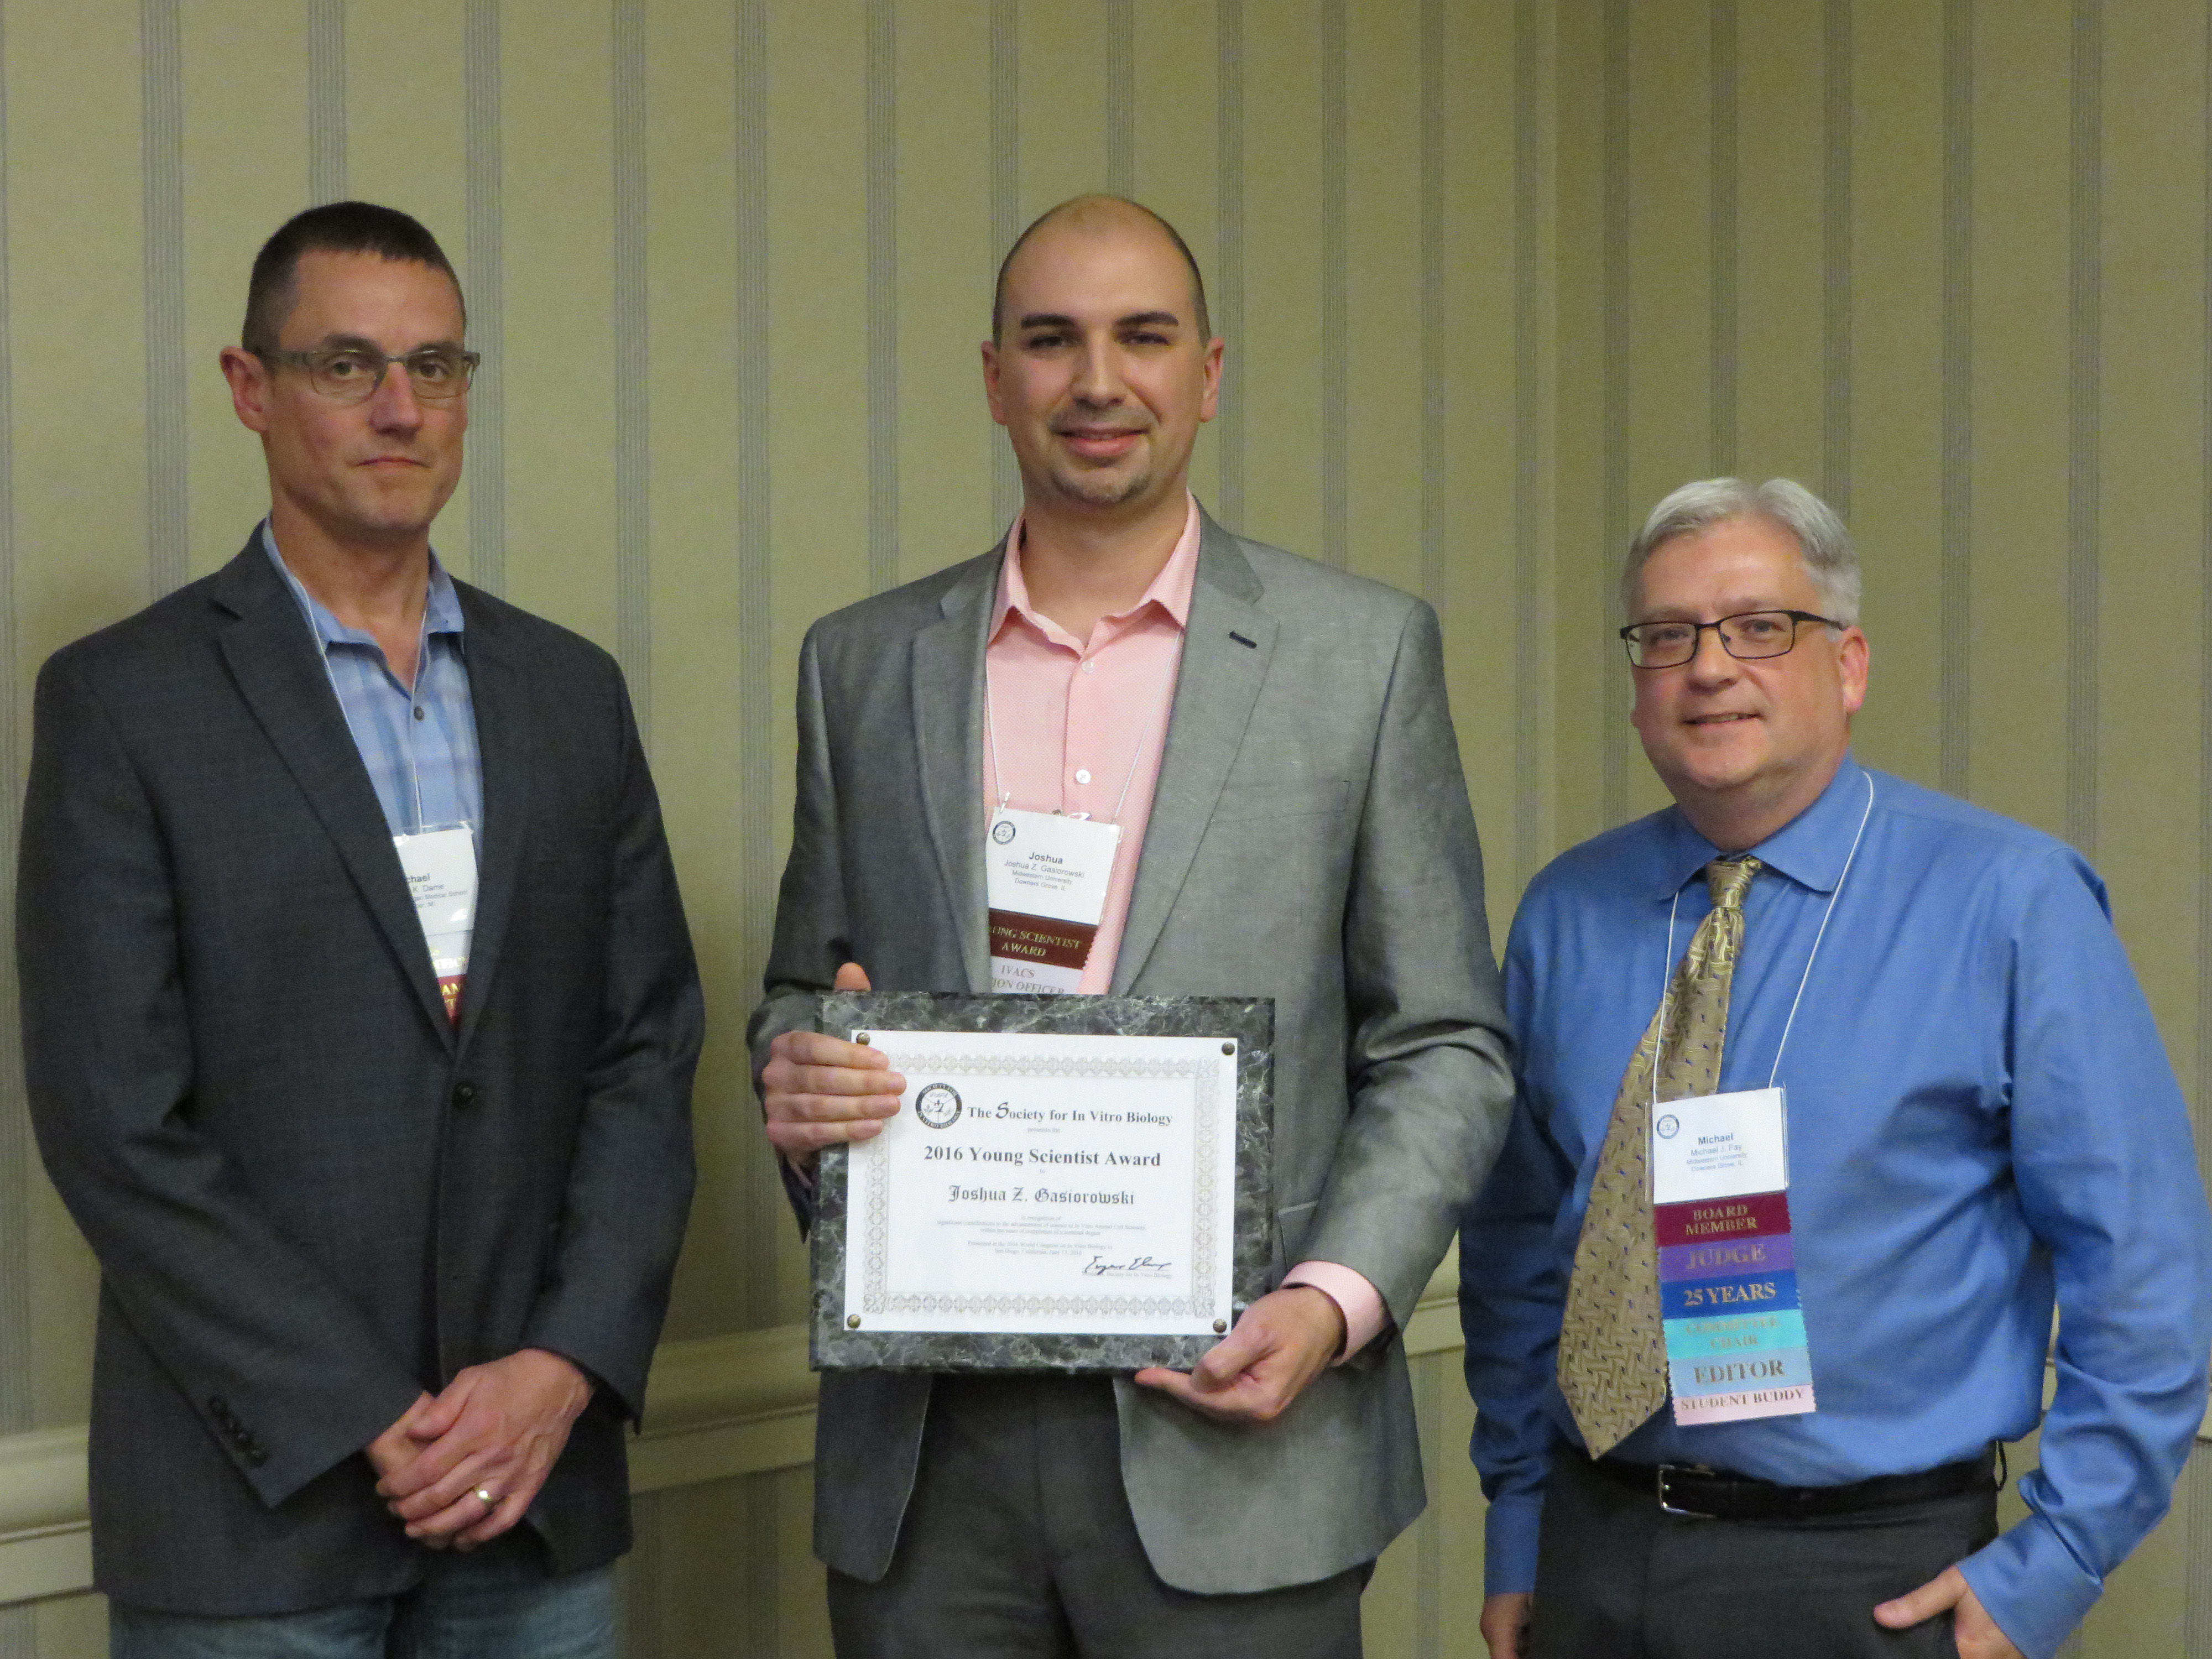 Joshua Gasiorowski (C) receives the Young Scientist Award from Michael Dame (L) and Michael Fay(R).